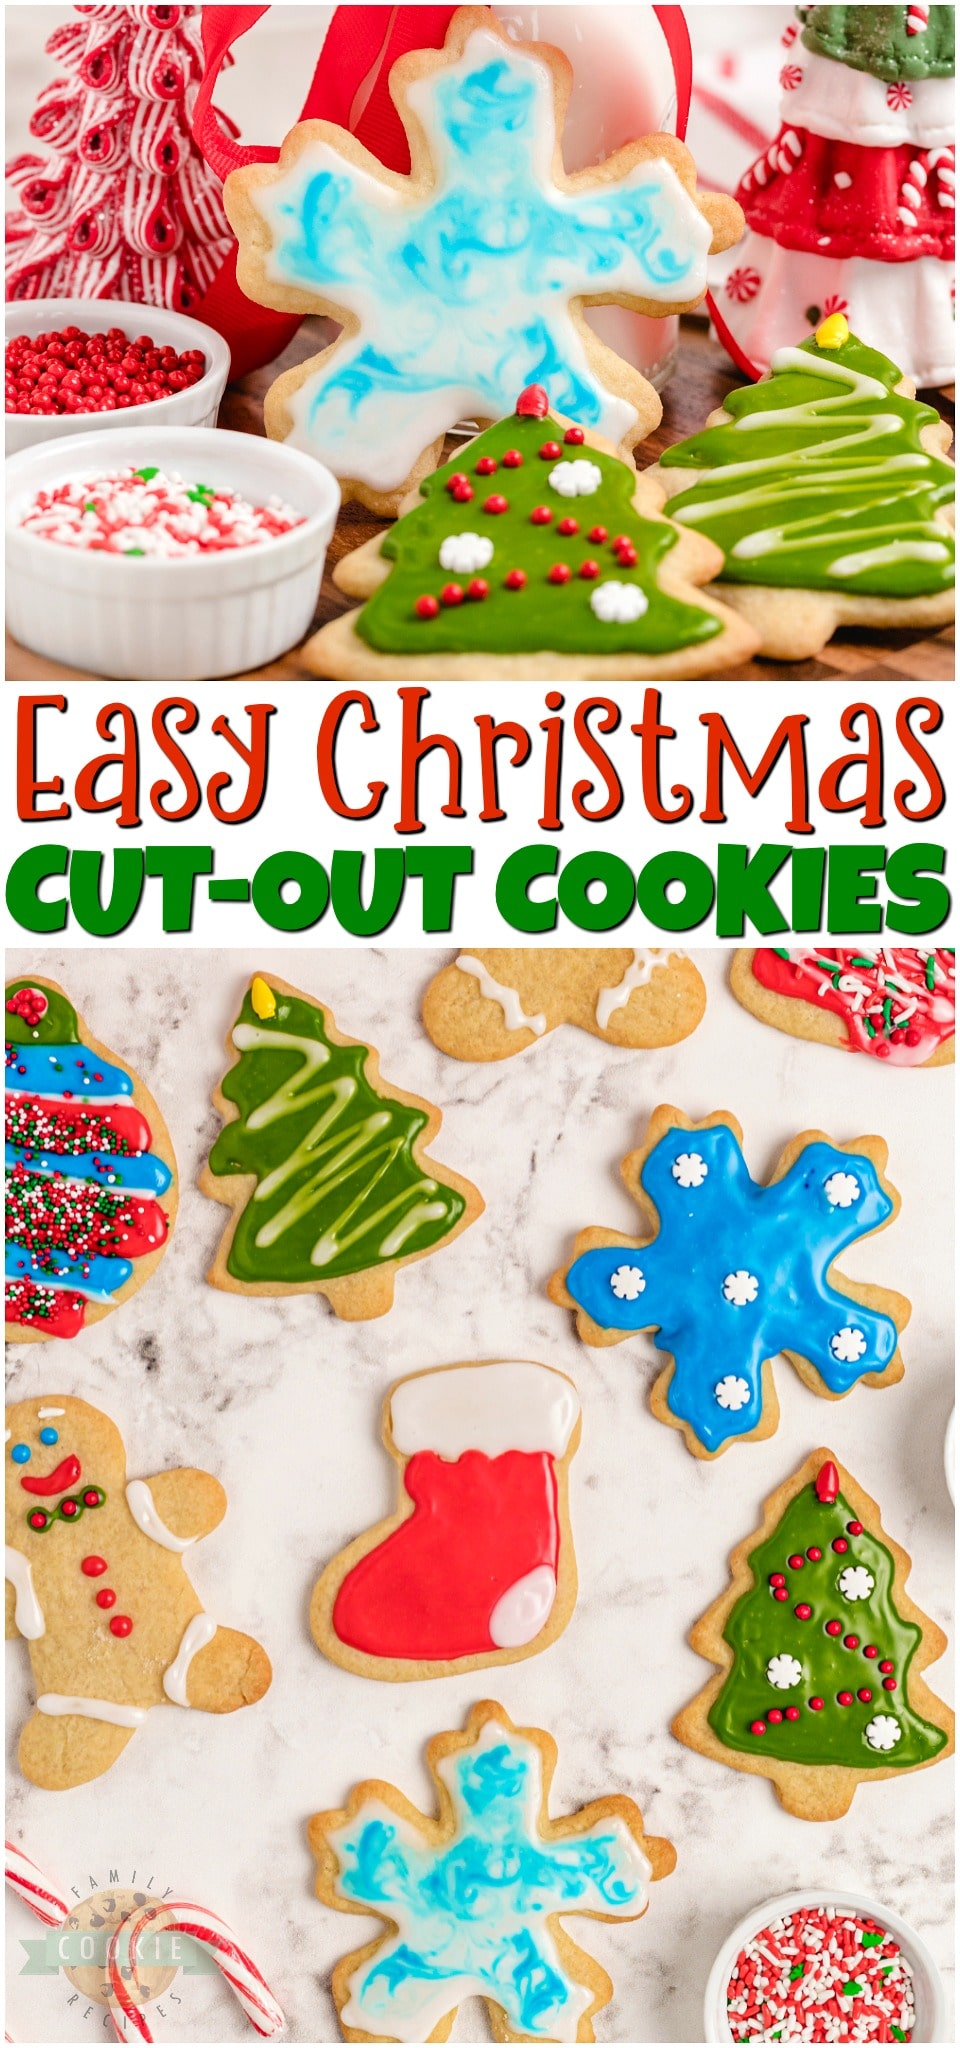 Classic Christmas Cut-Out Cookies perfect for the holidays! Easy sugar cookies for cookie cutters with a simple shiny cookie icing that everyone loves. #baking #cookies #Christmas #cutout #cookiecutters #cookieicing #sprinkles #hollidaybaking #easyrecipe from FAMILY COOKIE RECIPES via @familycookierecipes